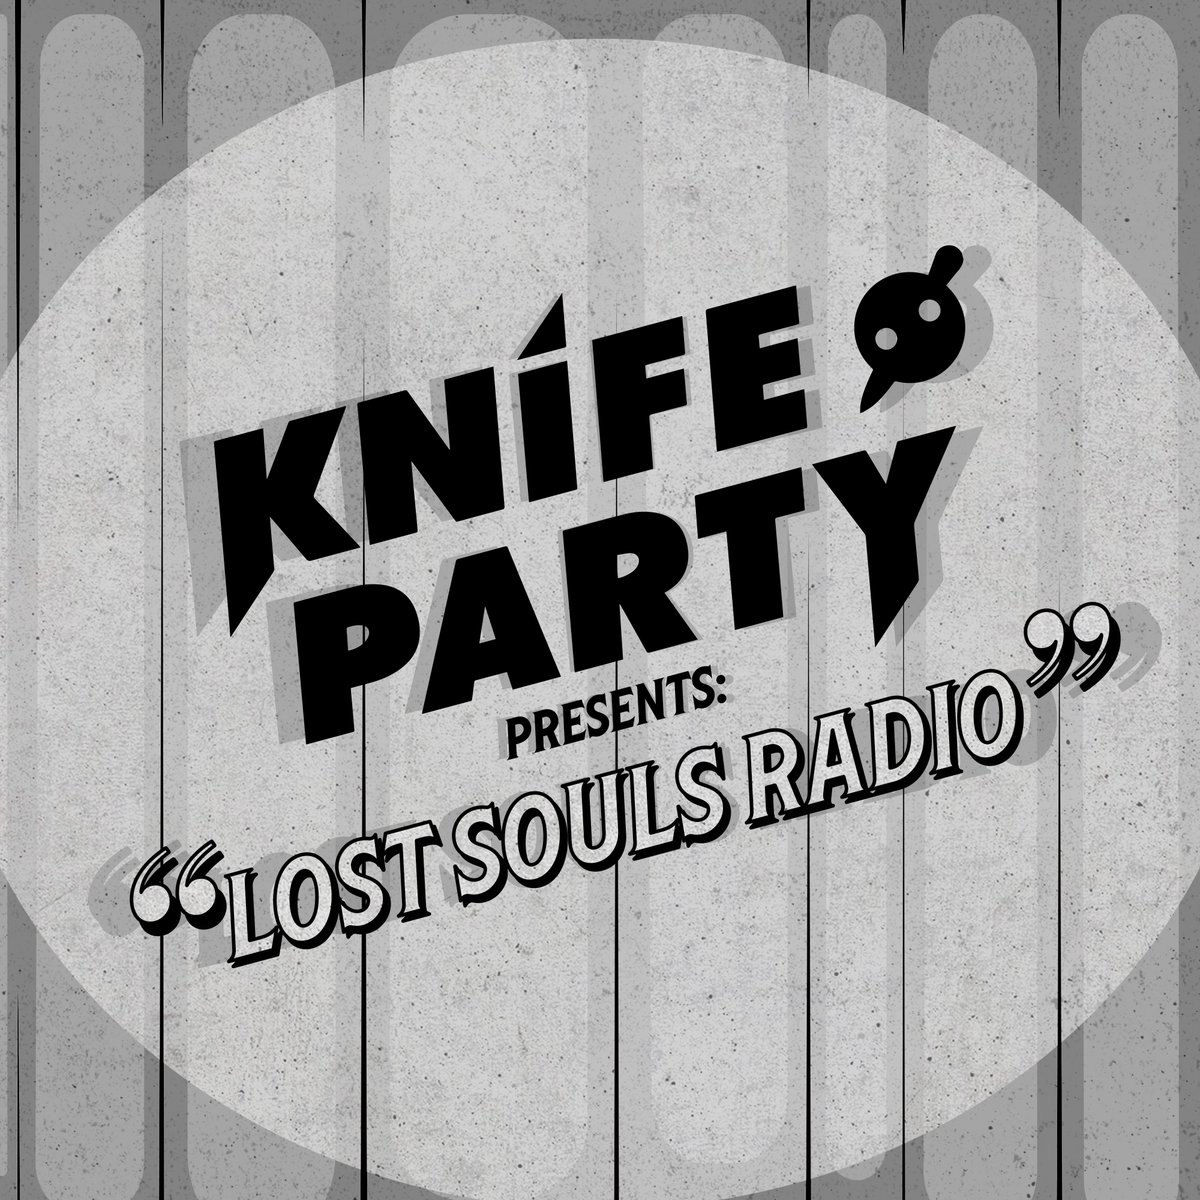 It's Friday…   https:// smarturl.it/LostSoulsRadio      #KnifeParty #LostSouls #RadioShow #Playlist<br>http://pic.twitter.com/Hp03Omih8m